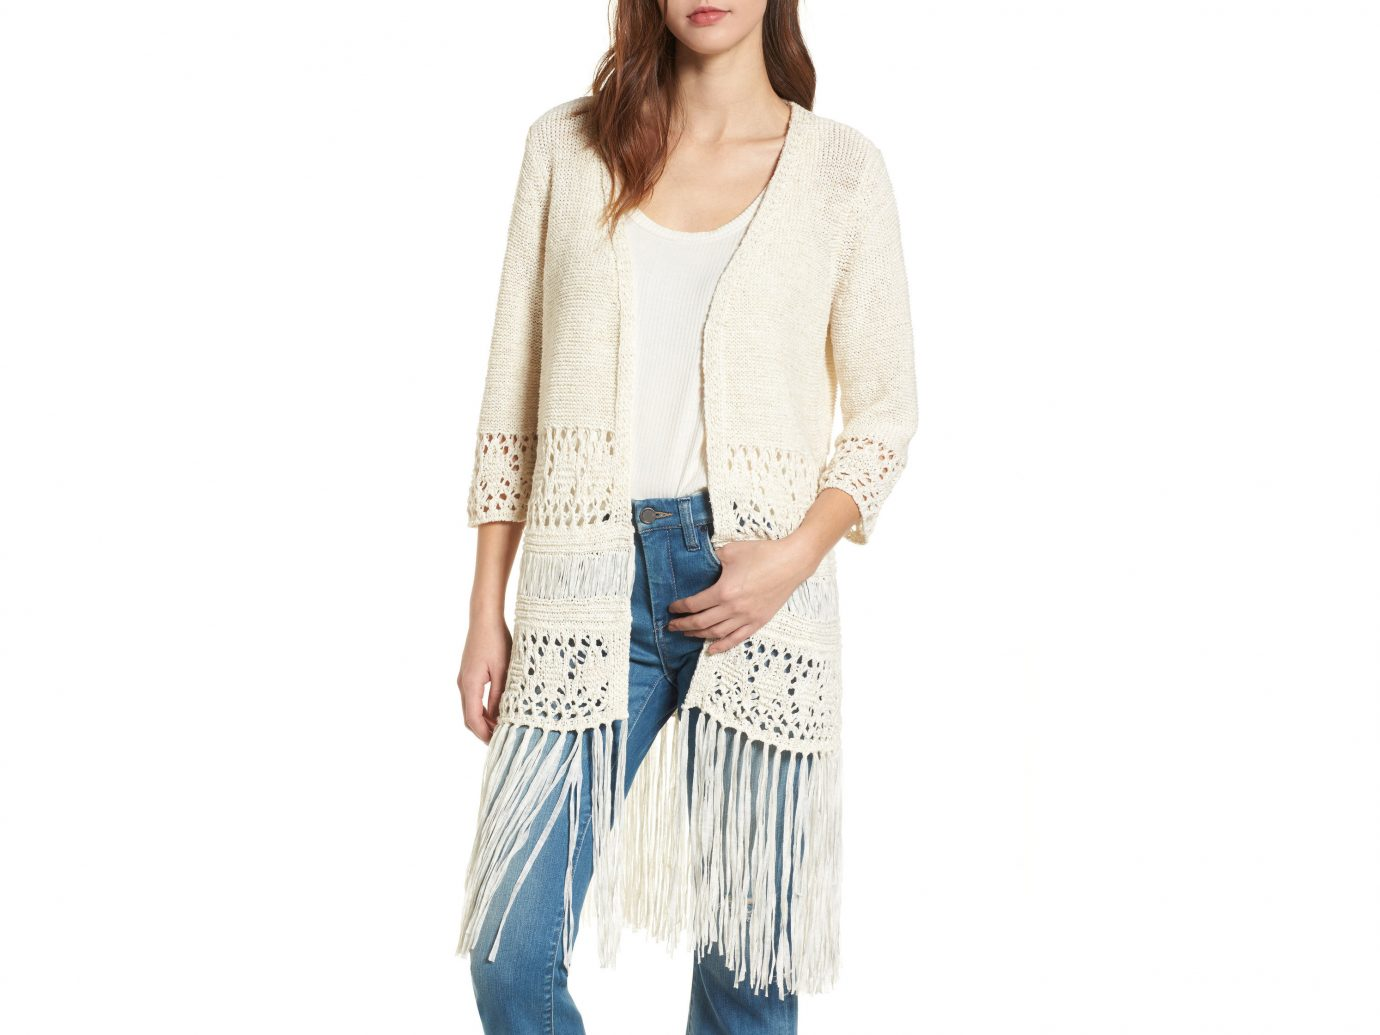 Style + Design Travel Shop clothing person outerwear standing cardigan posing sleeve